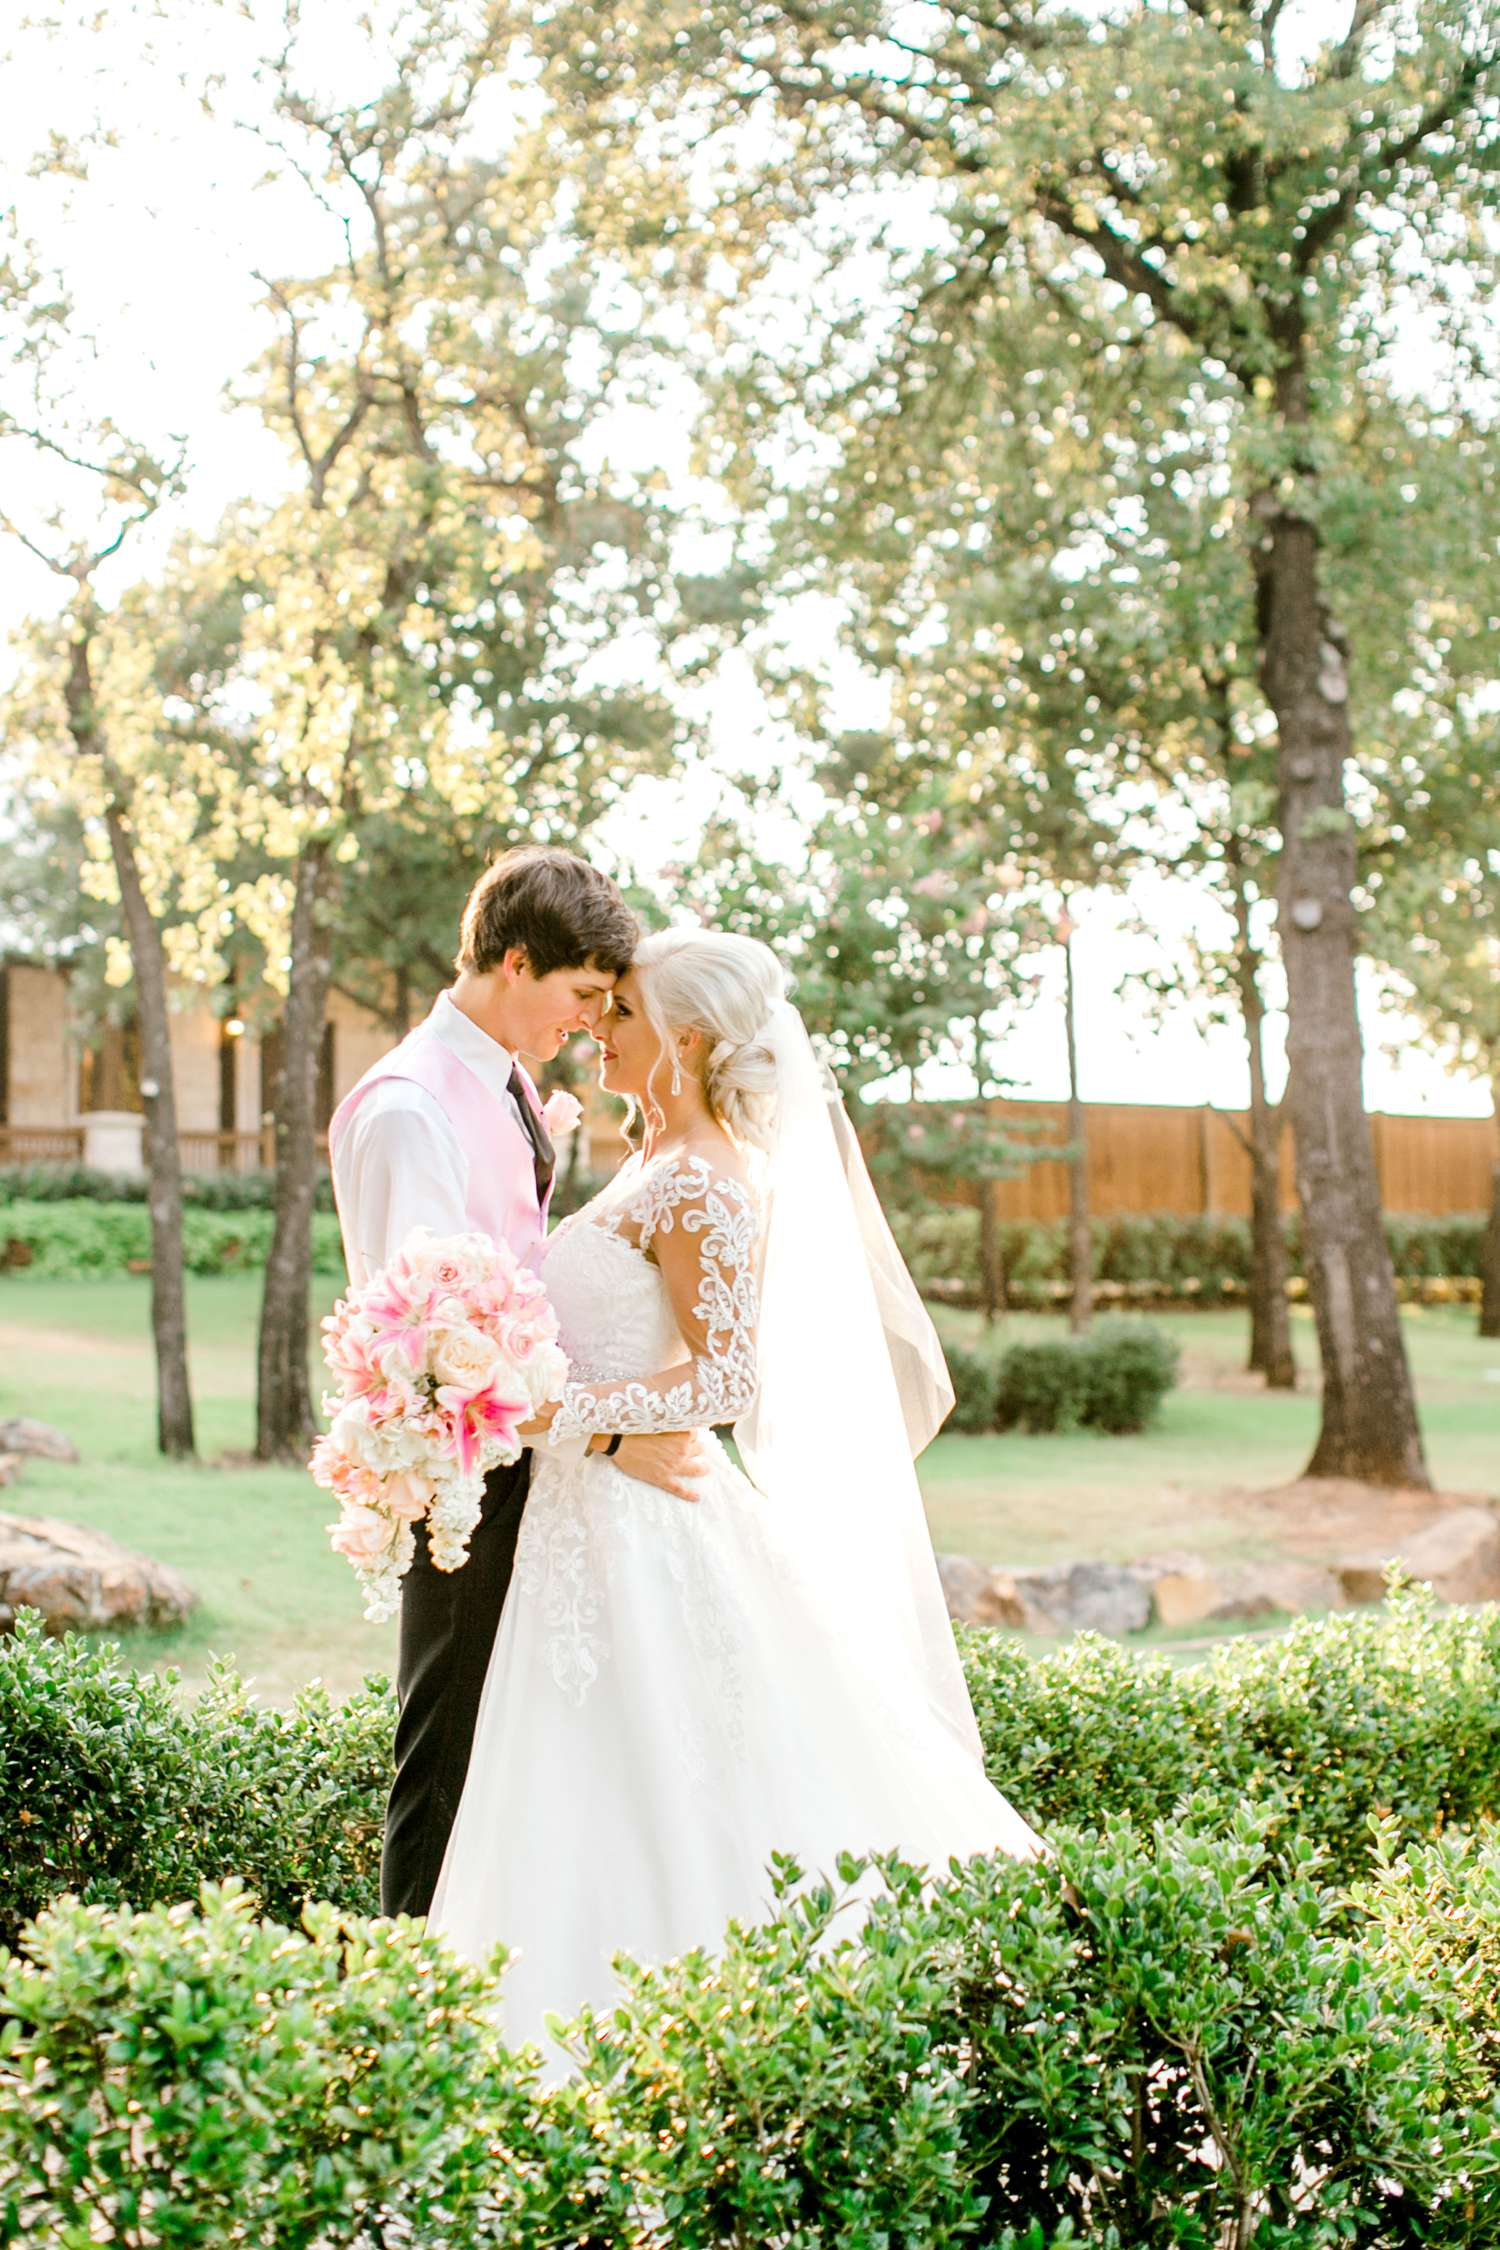 JESSICA+LYLE+NEEL+THE_SPRINGS_EVENTS_WEDDING_OKLAHOMA_ALLEEJ_PHOTOGRAPHER_0088.jpg